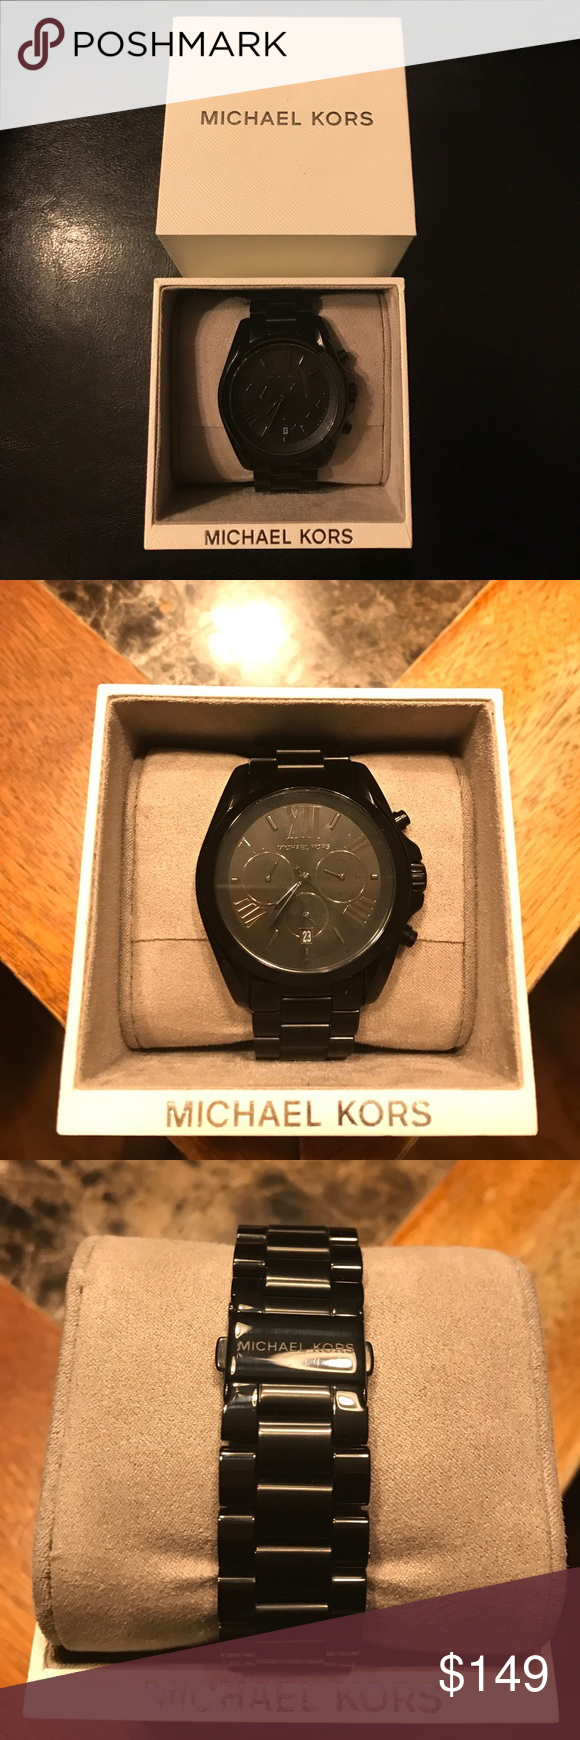 d142a723a018 Michael Kors watch ⌚ Authentic Yes purchased from Dillard s In August KORS  Michael Kors Accessories Watches